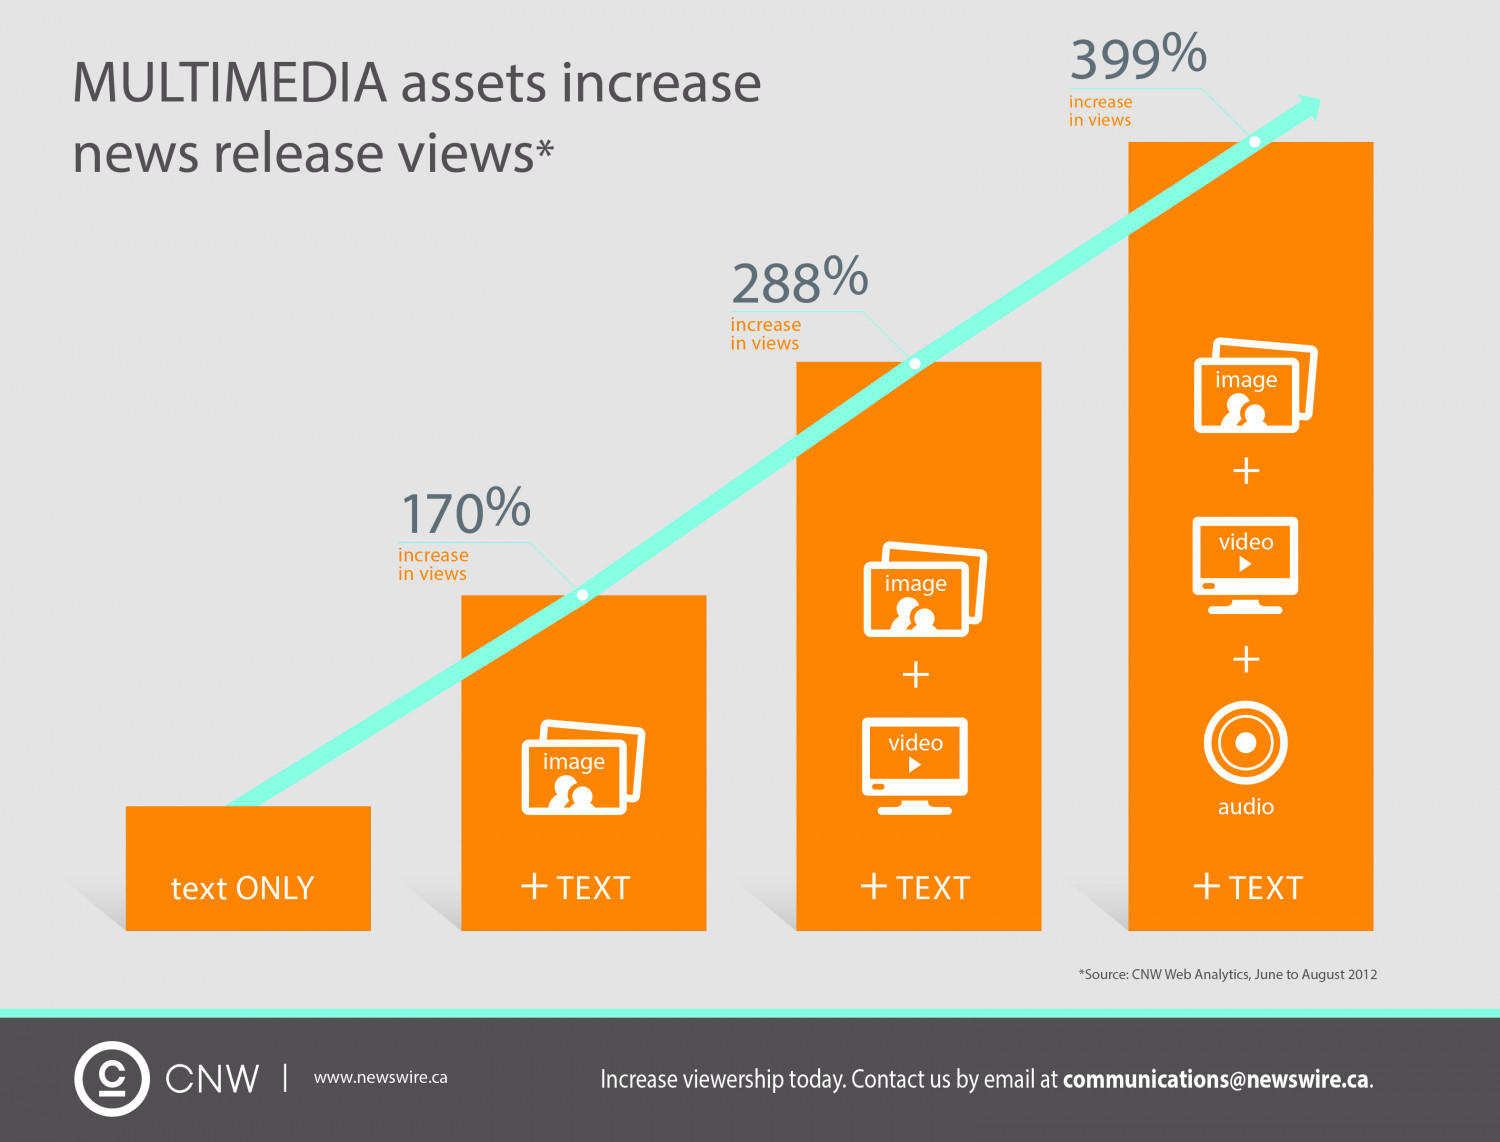 Multimedia assets increase news release views Infographic